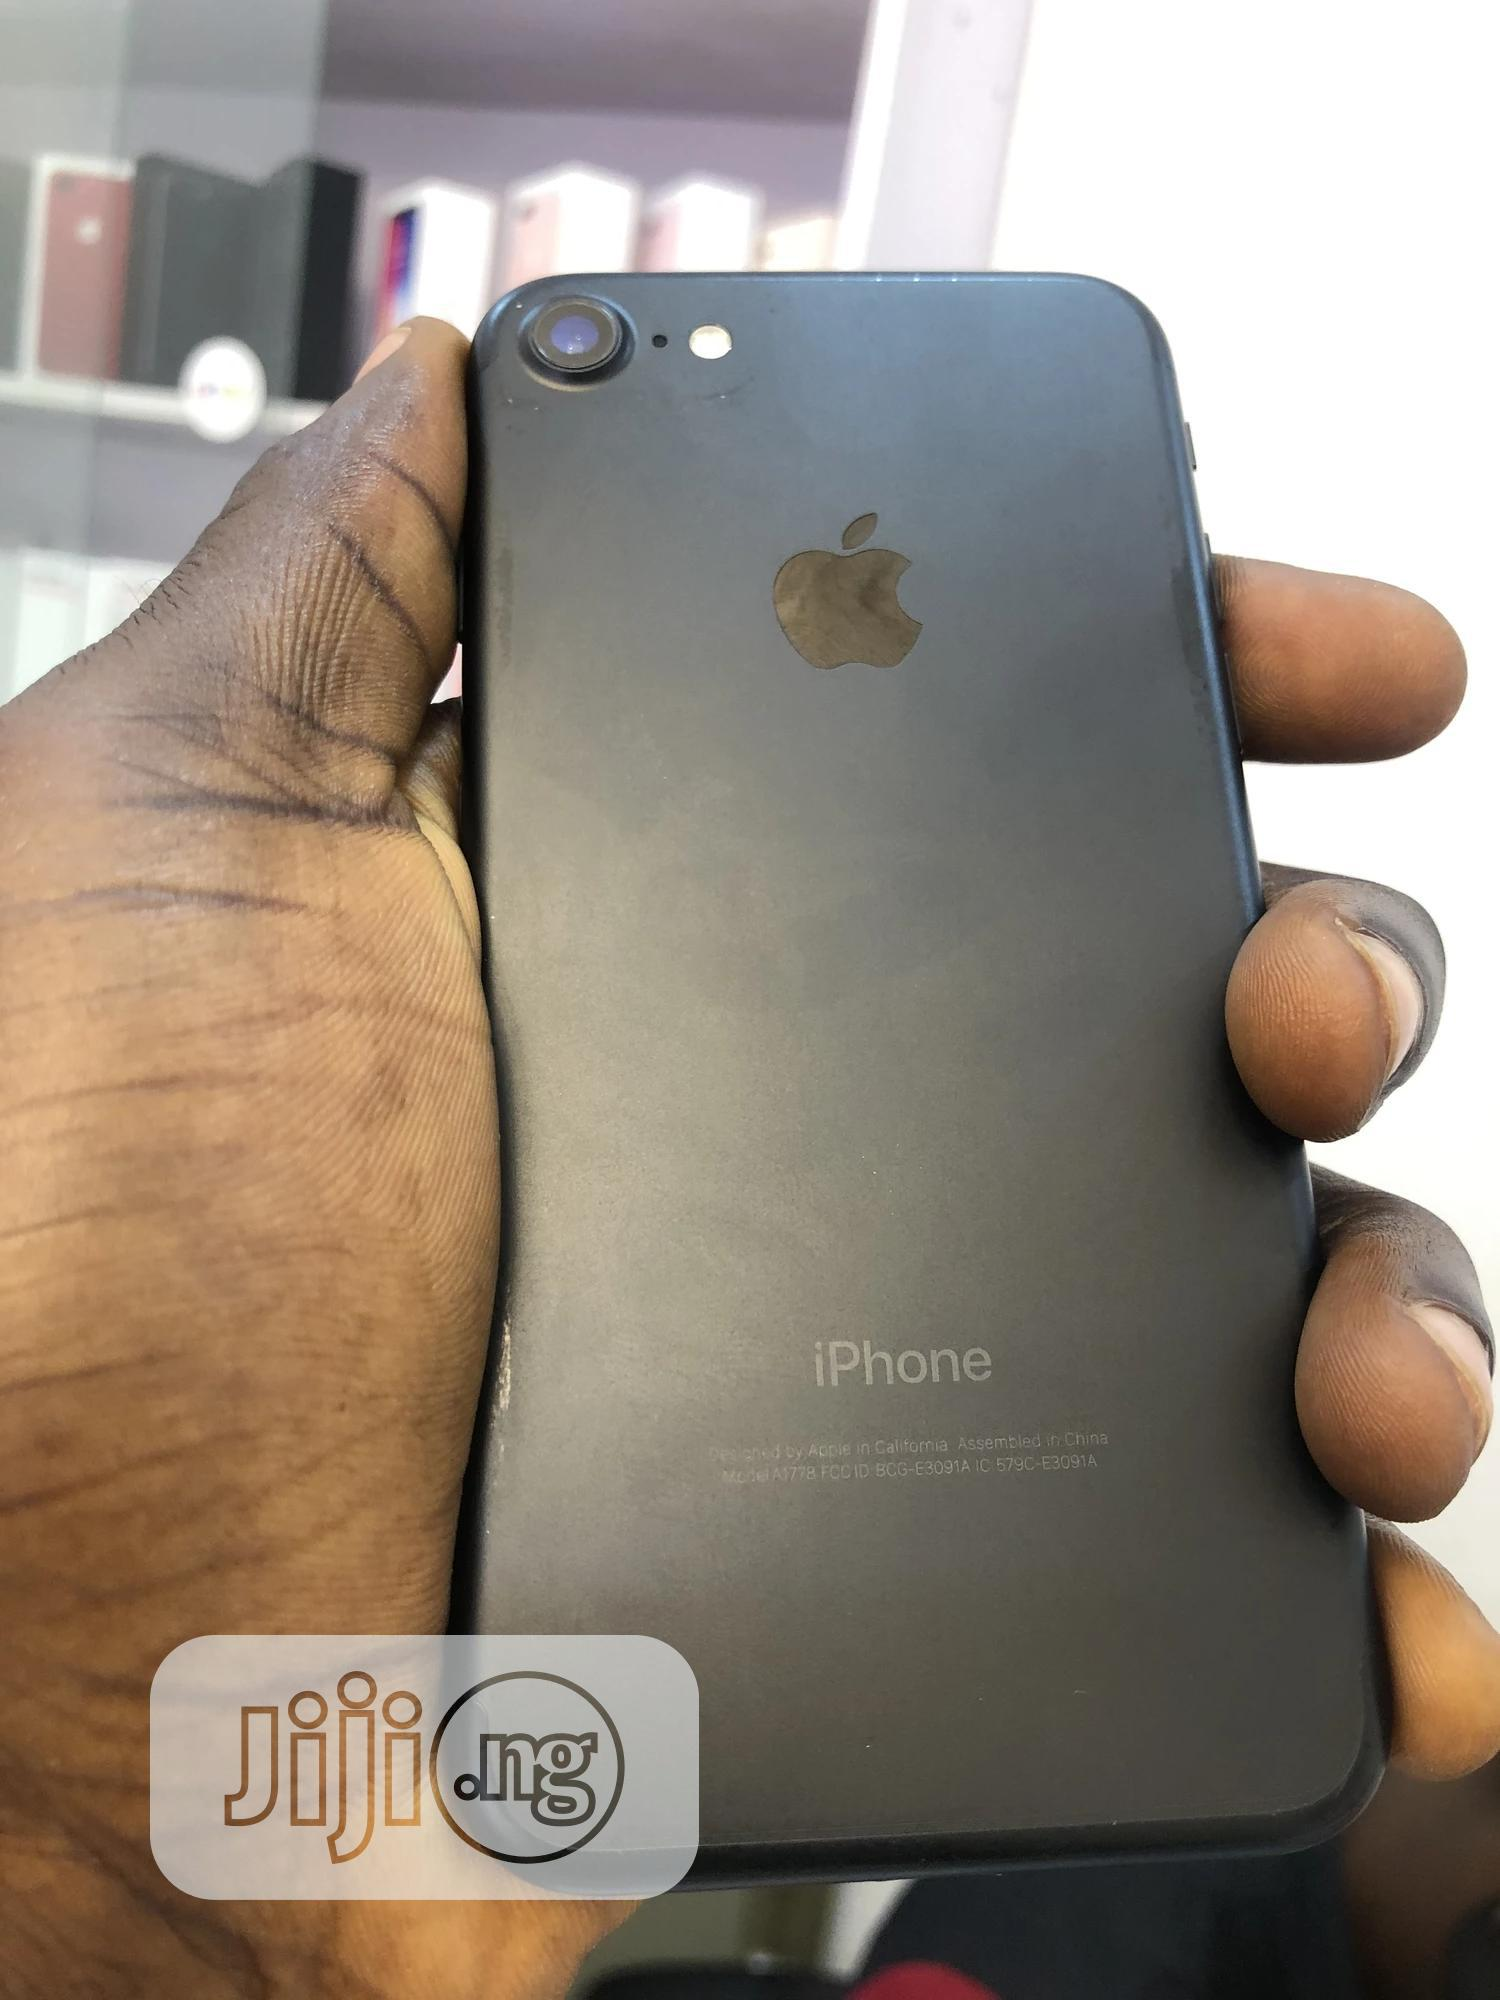 Apple iPhone 7 32 GB Black | Mobile Phones for sale in Wuse 2, Abuja (FCT) State, Nigeria